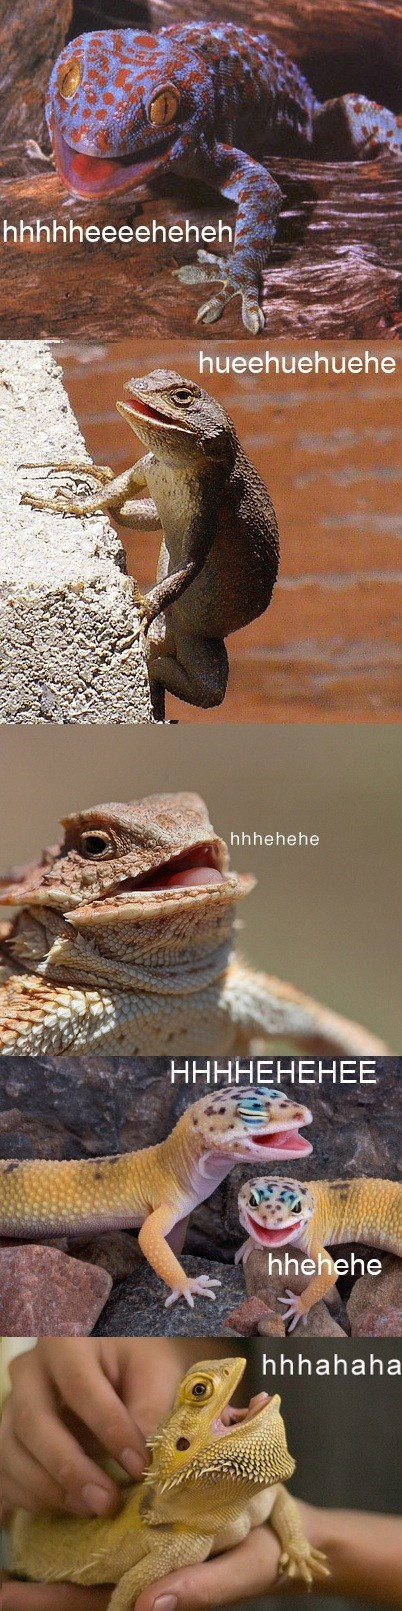 lizards,wtf,giggle,laugh,reptiles,weird